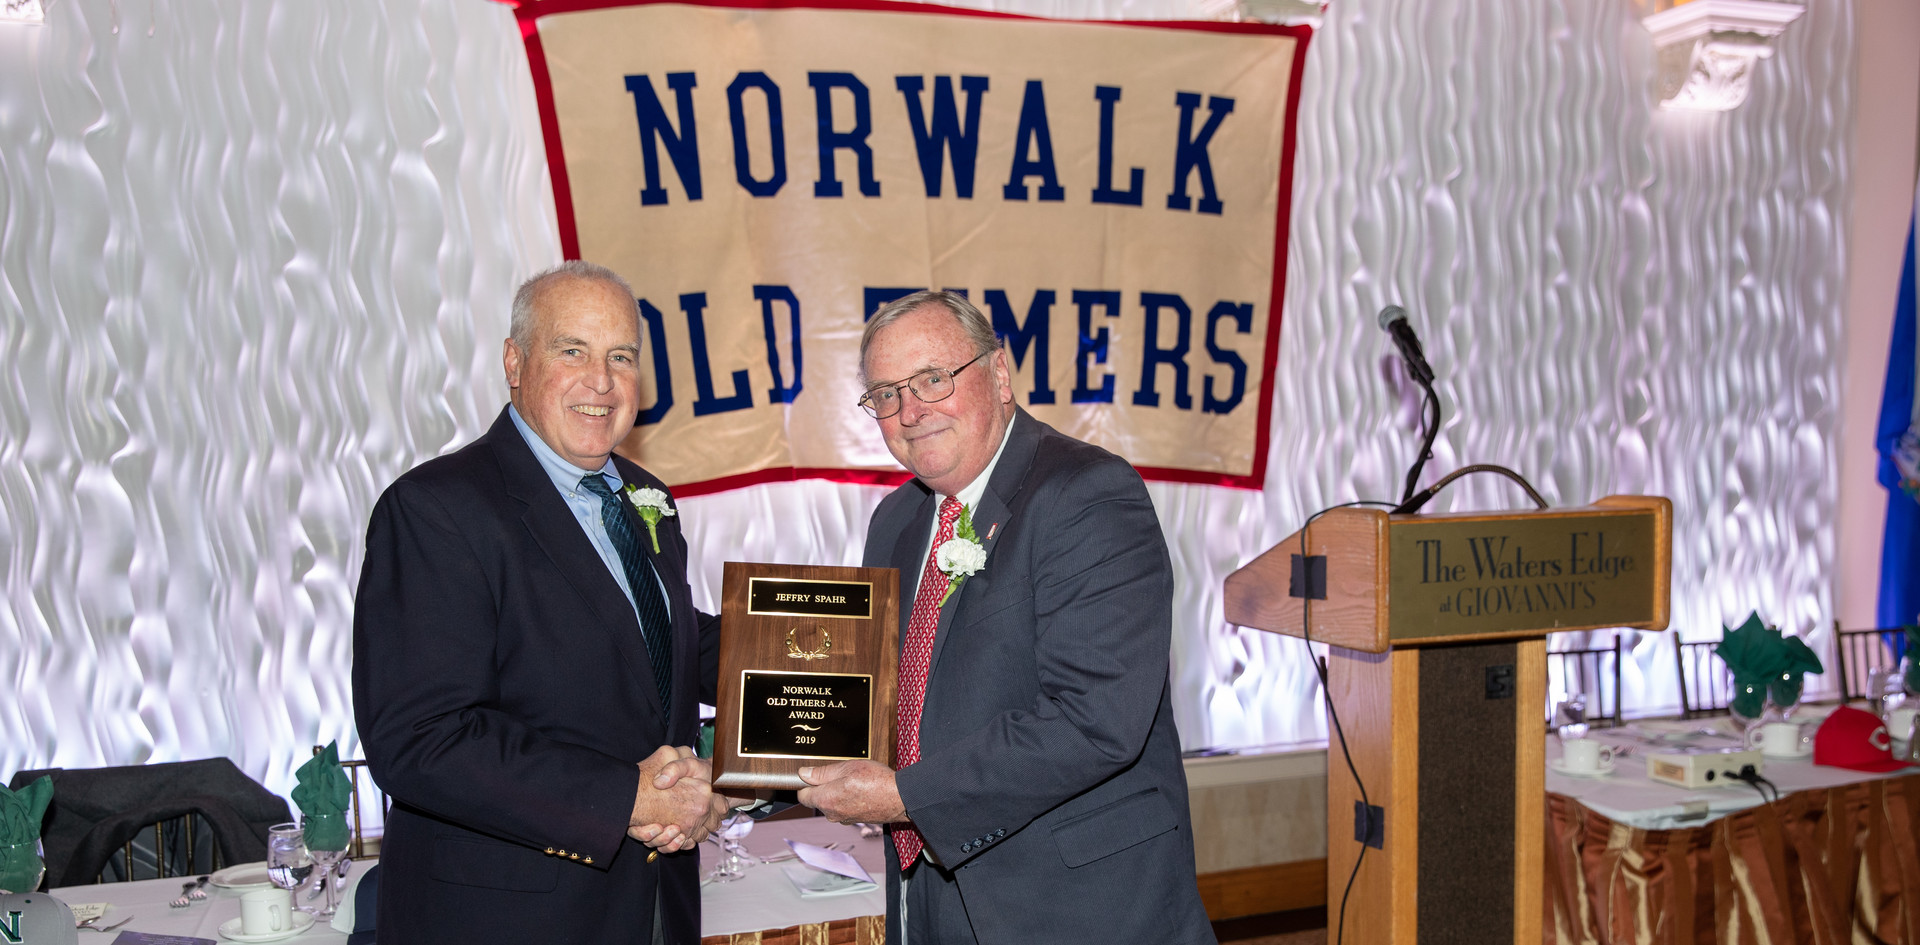 Jeff Spahr receives his award-commemorating plaque from Norwalk Old Timers Association president Jack Couch.  (photo by Josh Molaver)